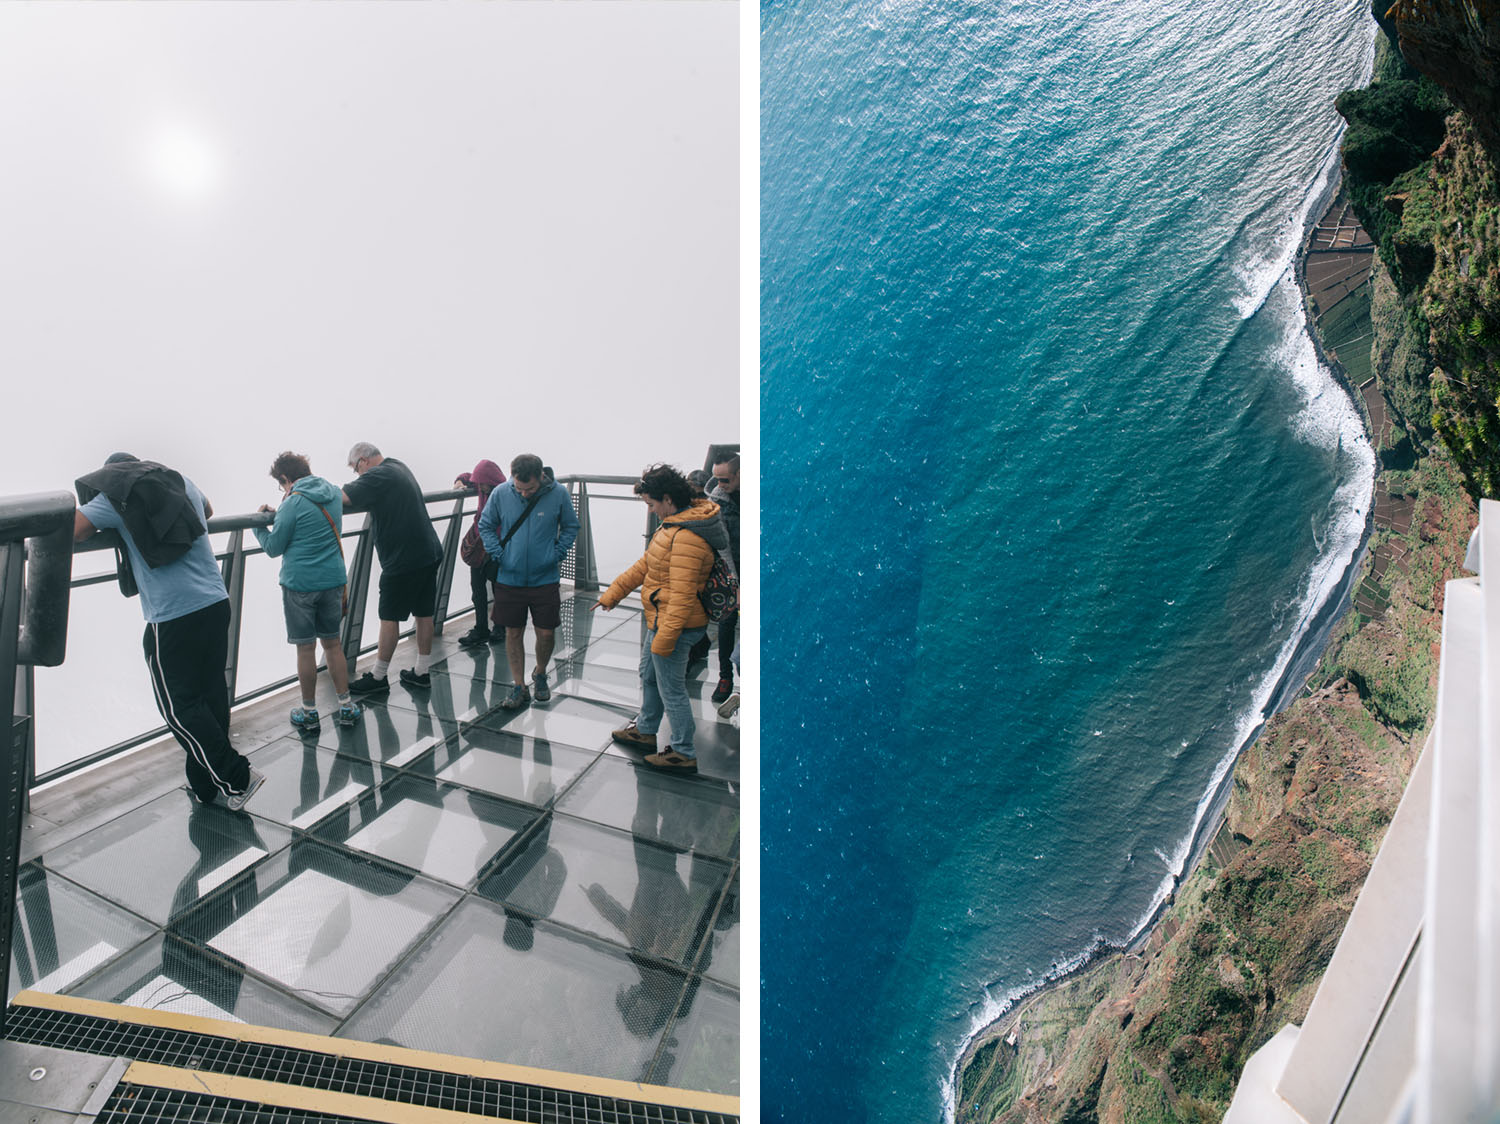 Standing on top of Cabo Girão